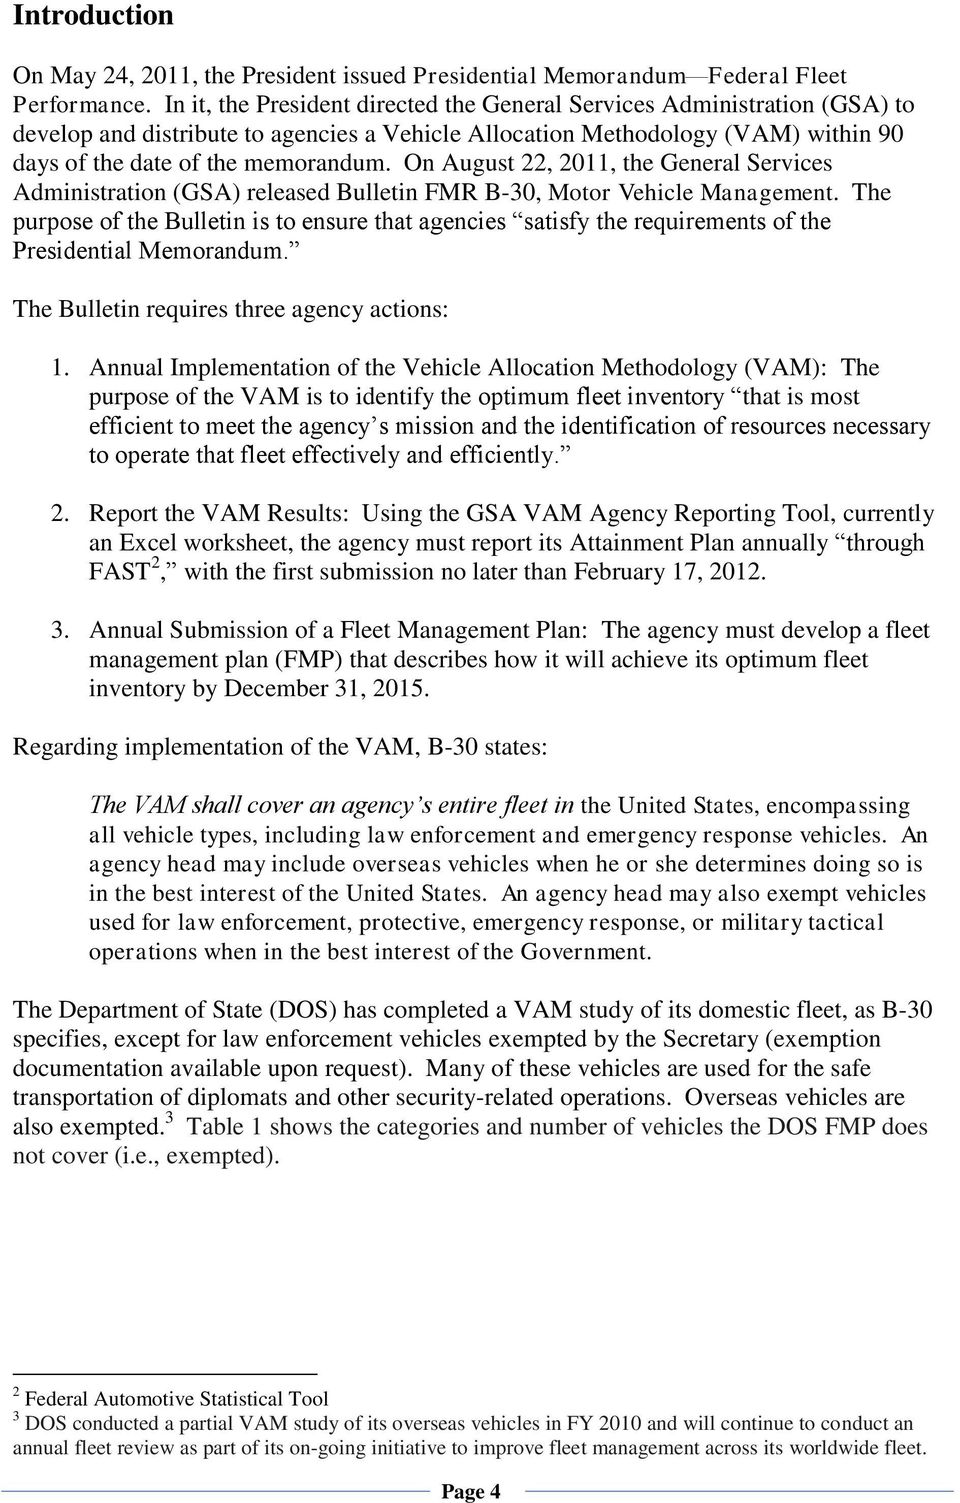 On August 22, 2011, the General Services Administration (GSA) released Bulletin FMR B-30, Motor Vehicle Management.